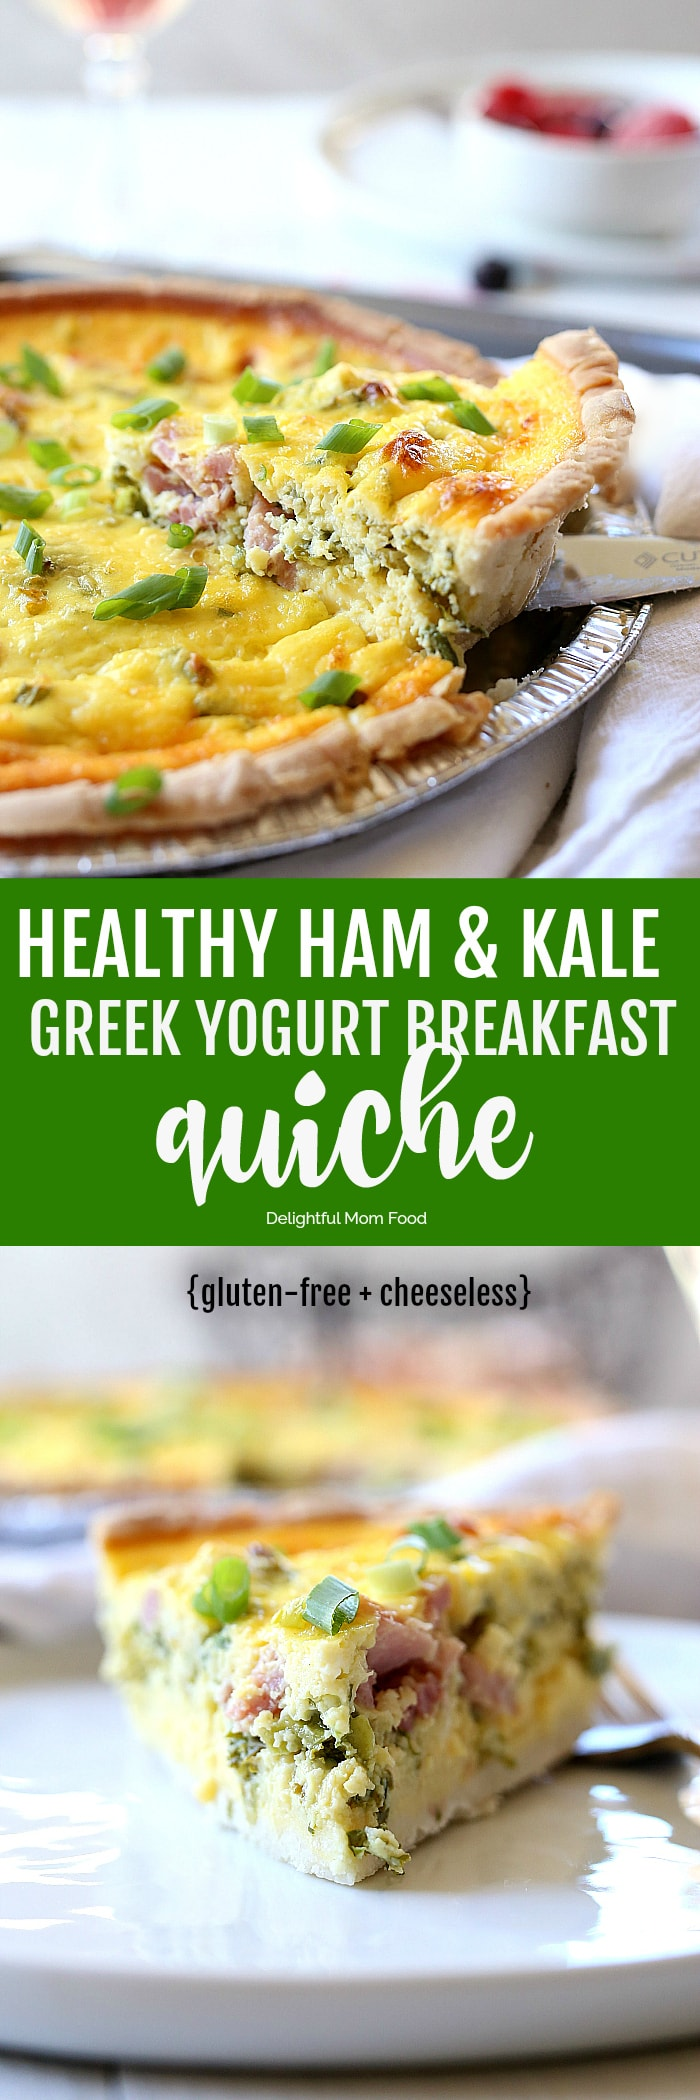 Satisfying and healthy quiche recipe made with finely chopped kale, ham and protein packed non-fat Greek yogurt baked in a gluten free pie crust. 8-simple ingredients for a quick healthy breakfast, brunch or dinner! #healthy #quiche #recipe #kale #eggs #Greekyogurt #ham #breakfast #glutenfree | Delightfulmomfood.com